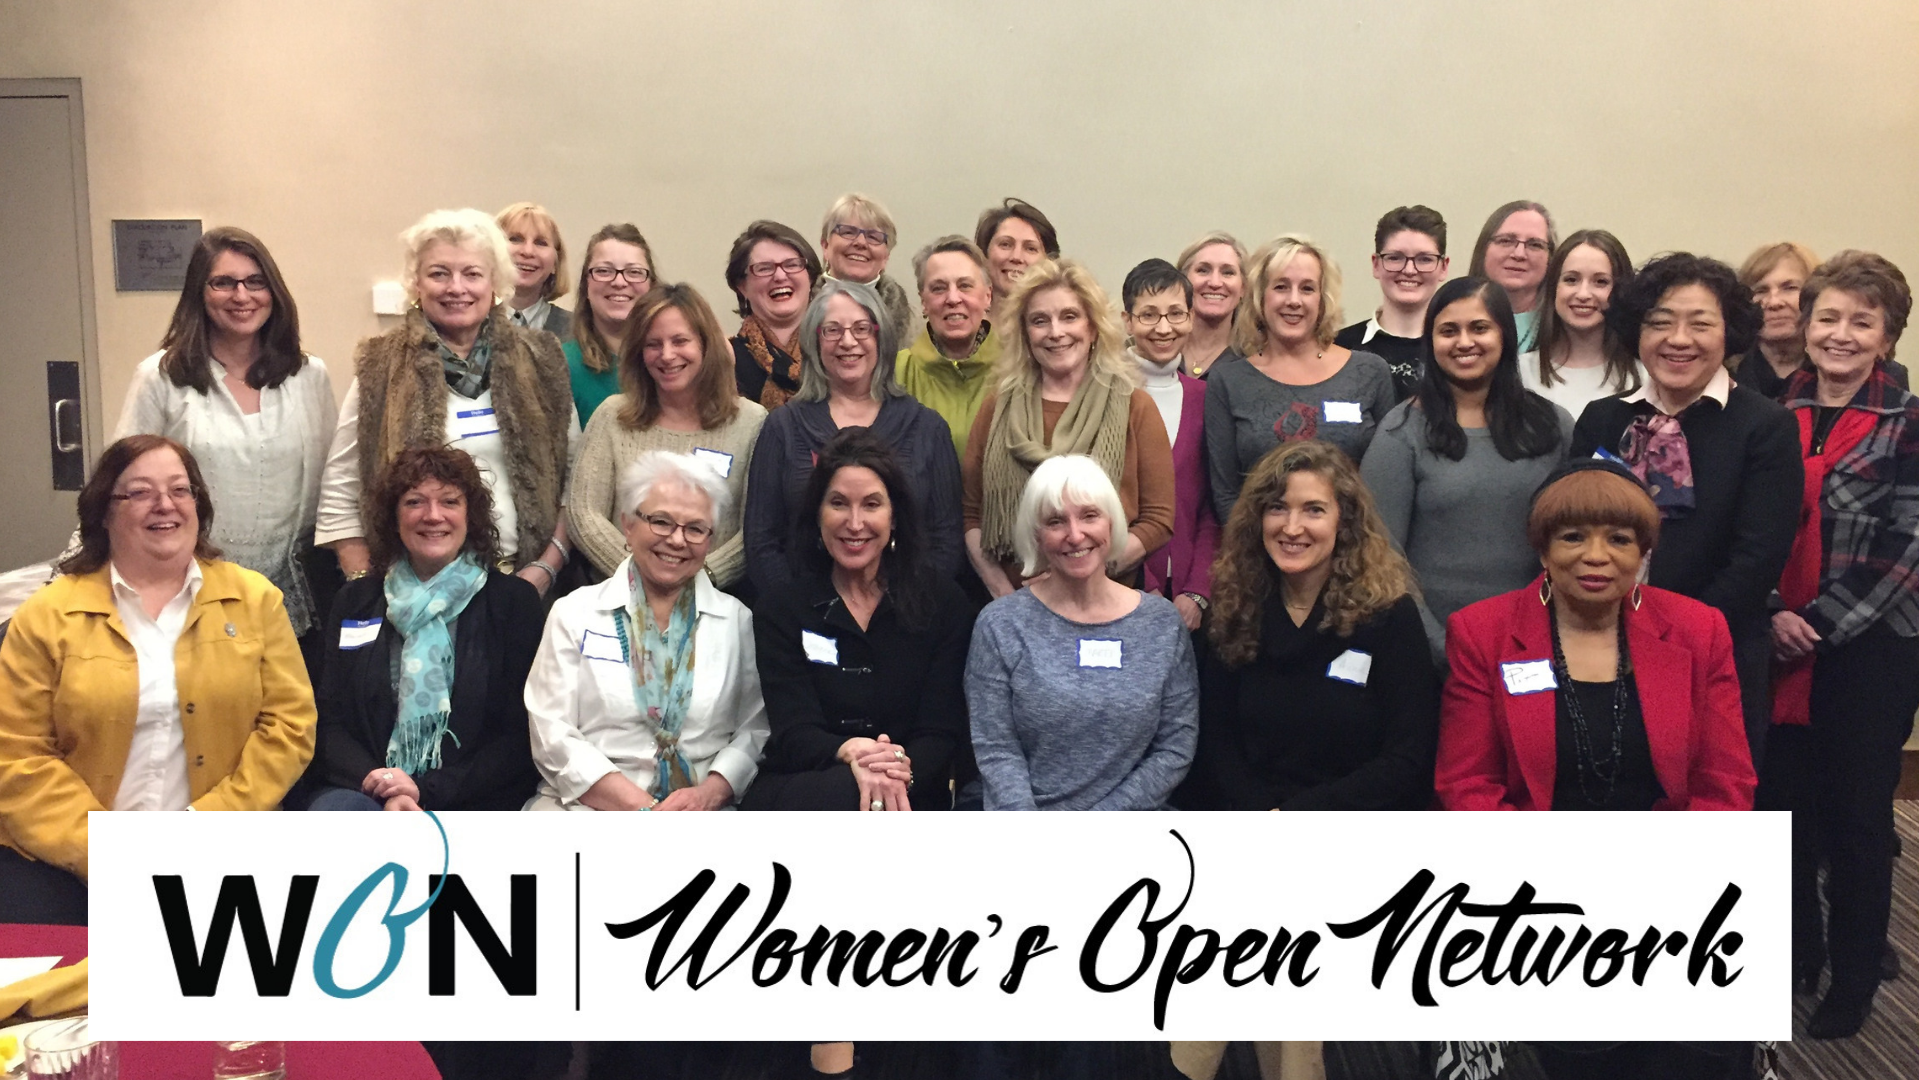 WON - Women's Open Network